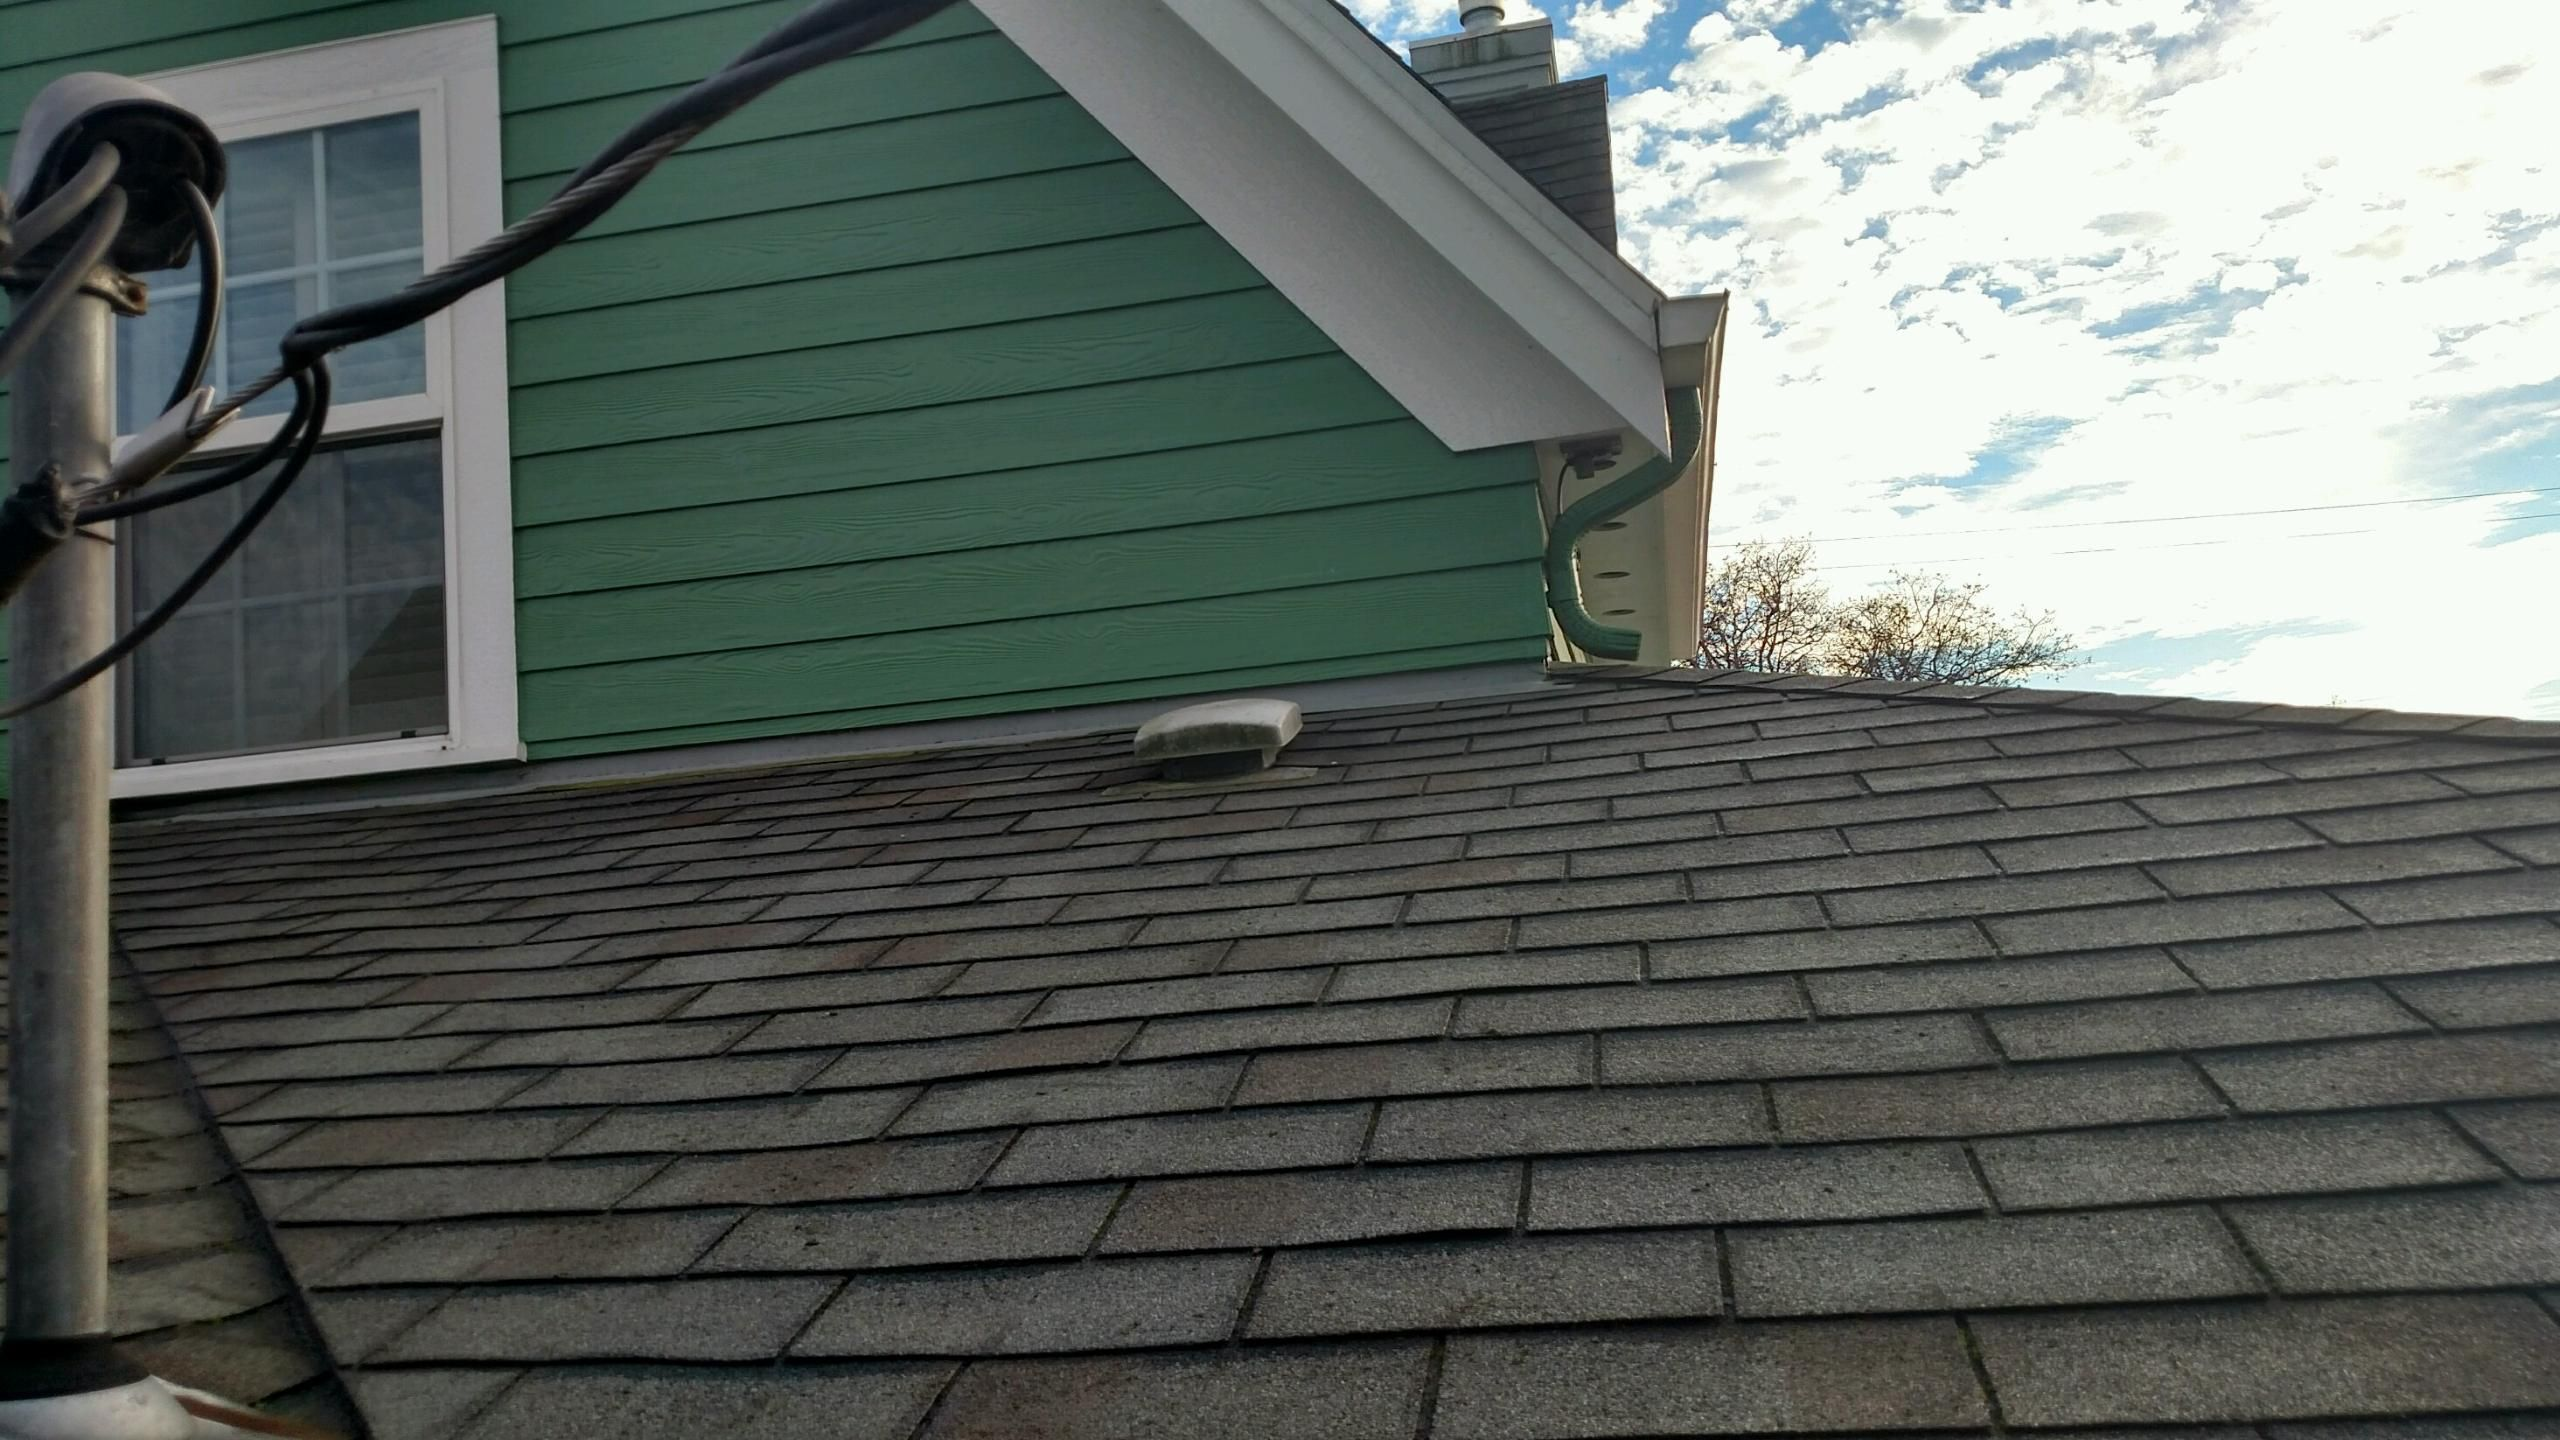 Composition Roof Maintenance Repair Vancouver Wa By Northwest Roof Maintenance Composition Roof Roof Maintenance Roof